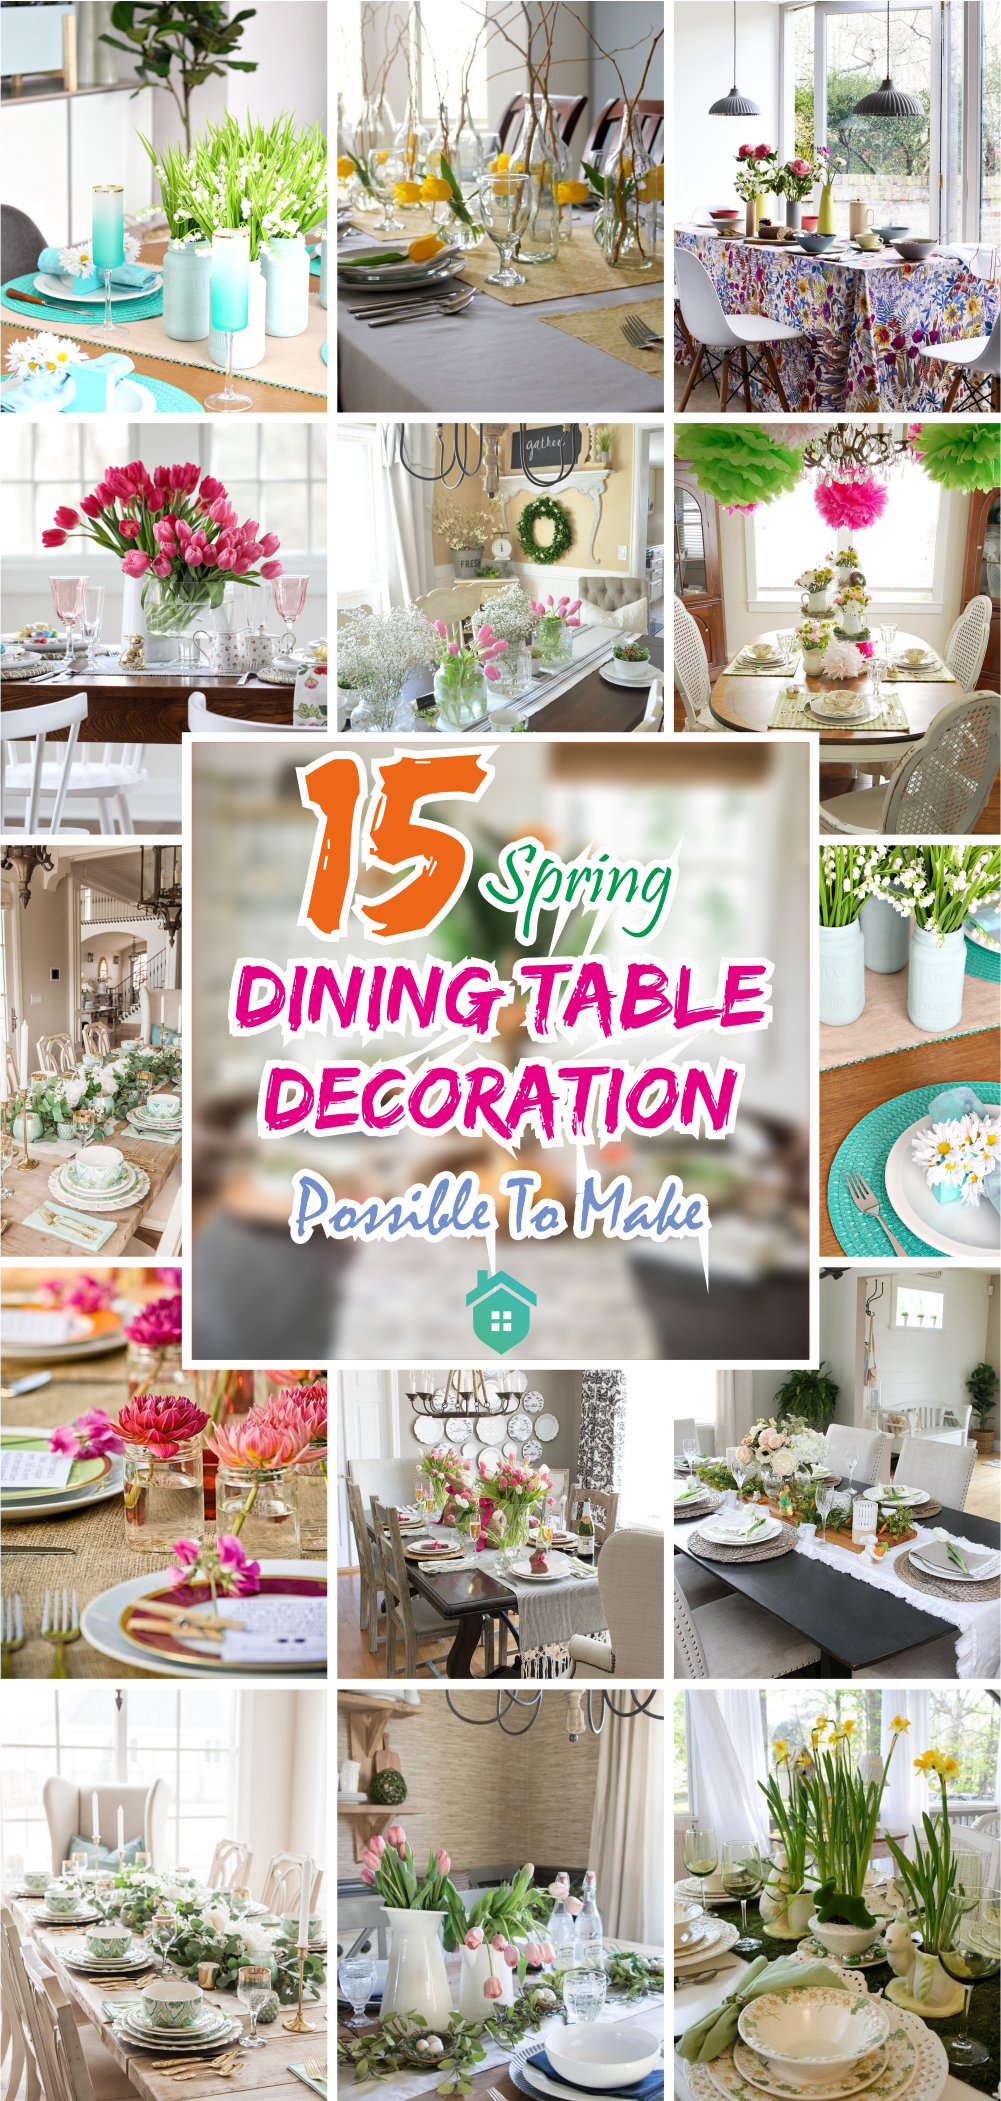 15 spring dining table decoration possible to make5